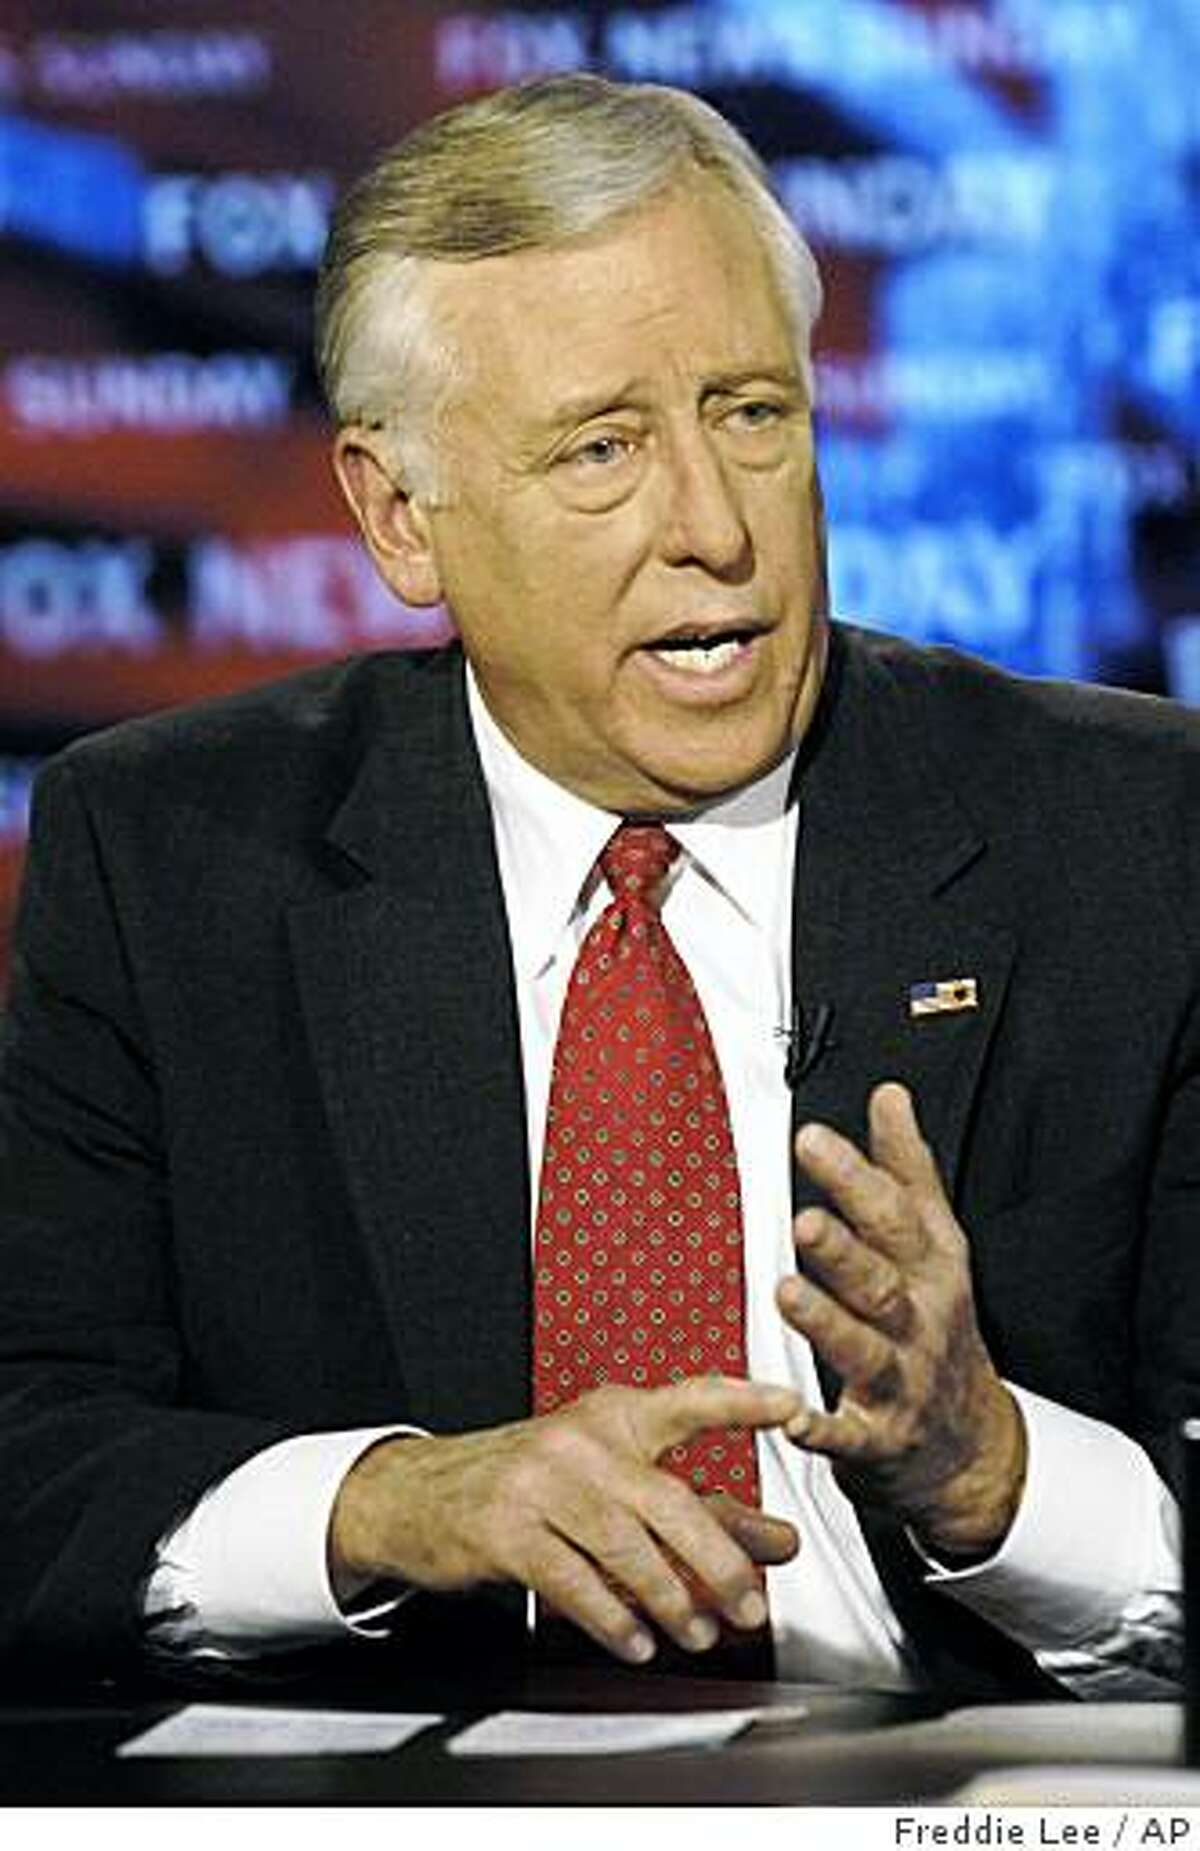 In this photo provided by FOX News, House Majority Leader Steny Hoyer, D-Md., appears on